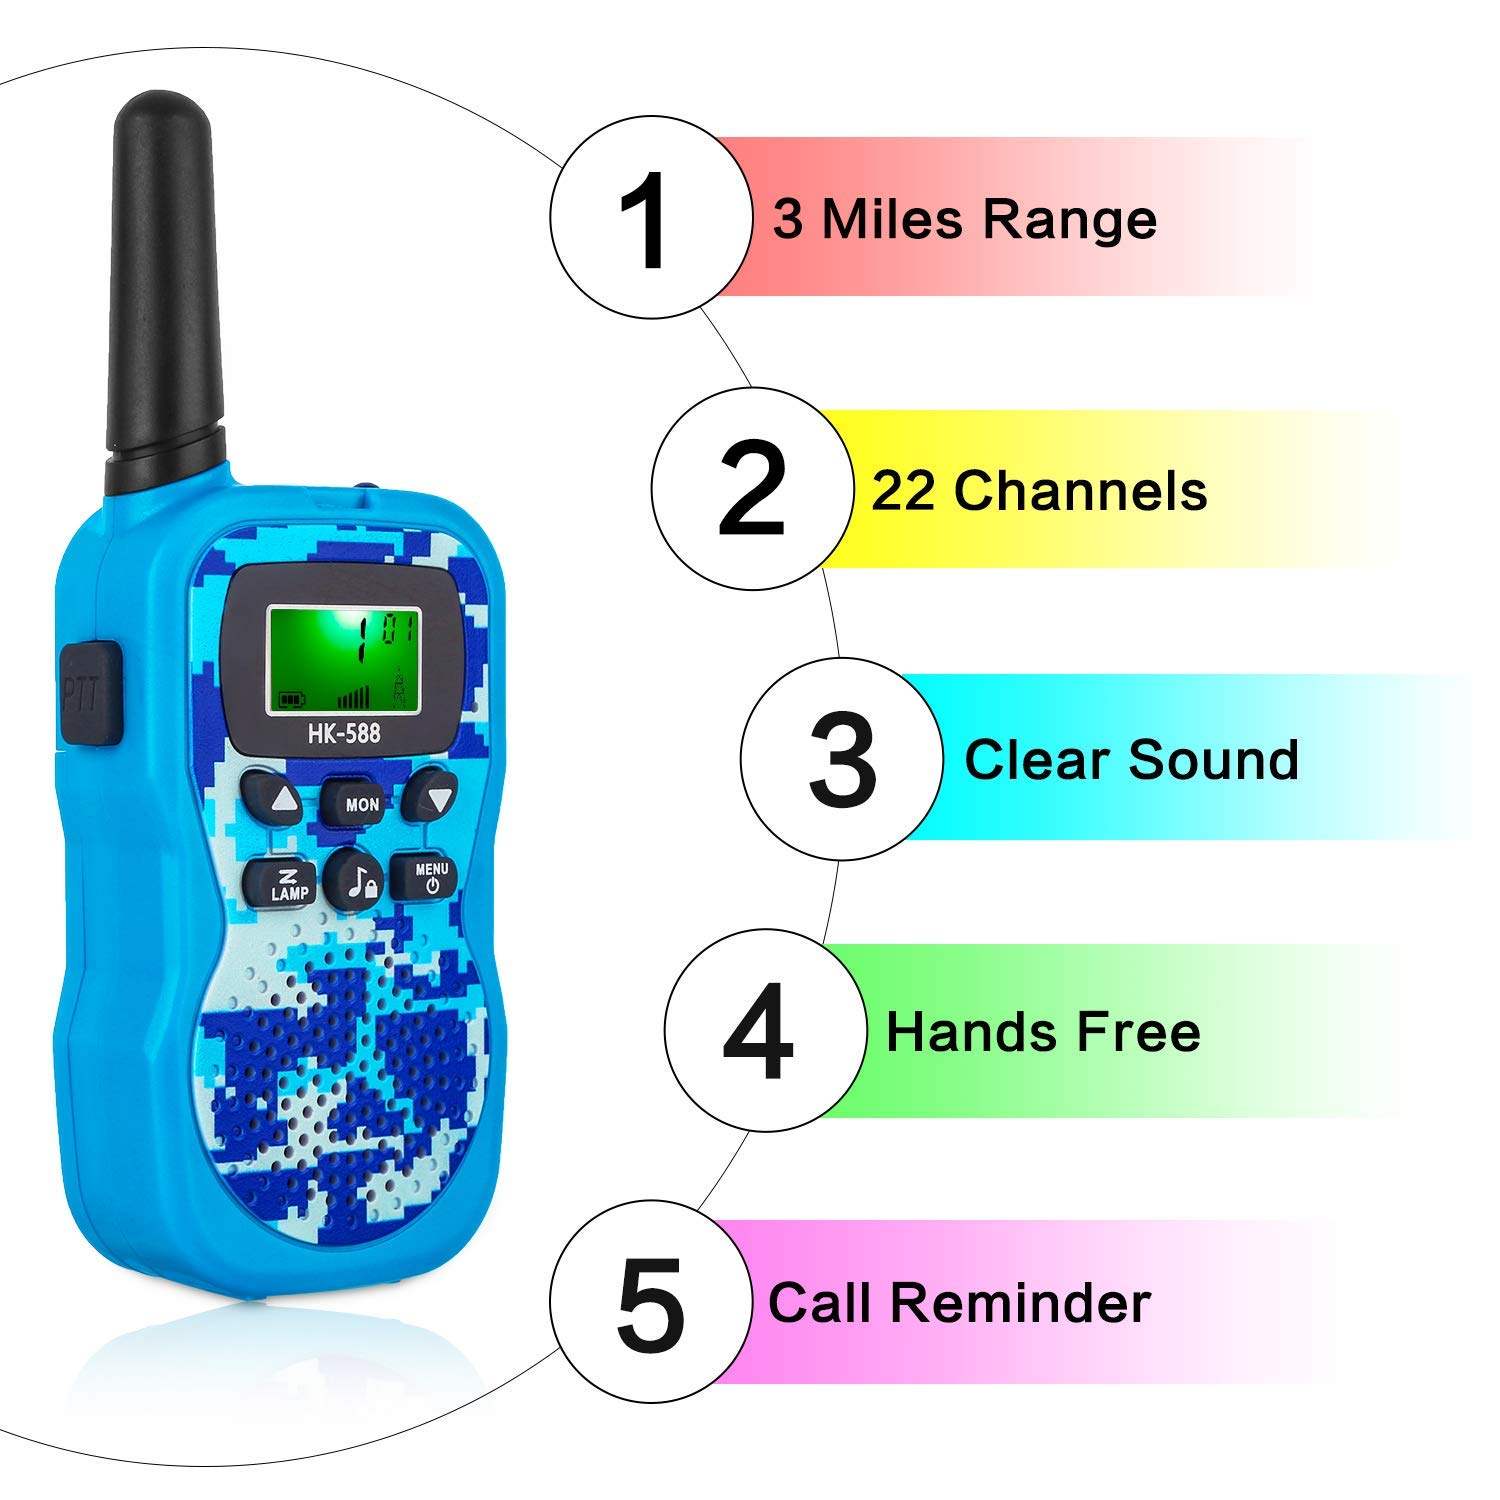 Walkie Talkies for Kids, Handheld Woki Toki Toys for Boys and Girls with Flashlight, License Free Kids Survival Gear for Hunting and Outdoor Adventure by VERDUO (Image #1)